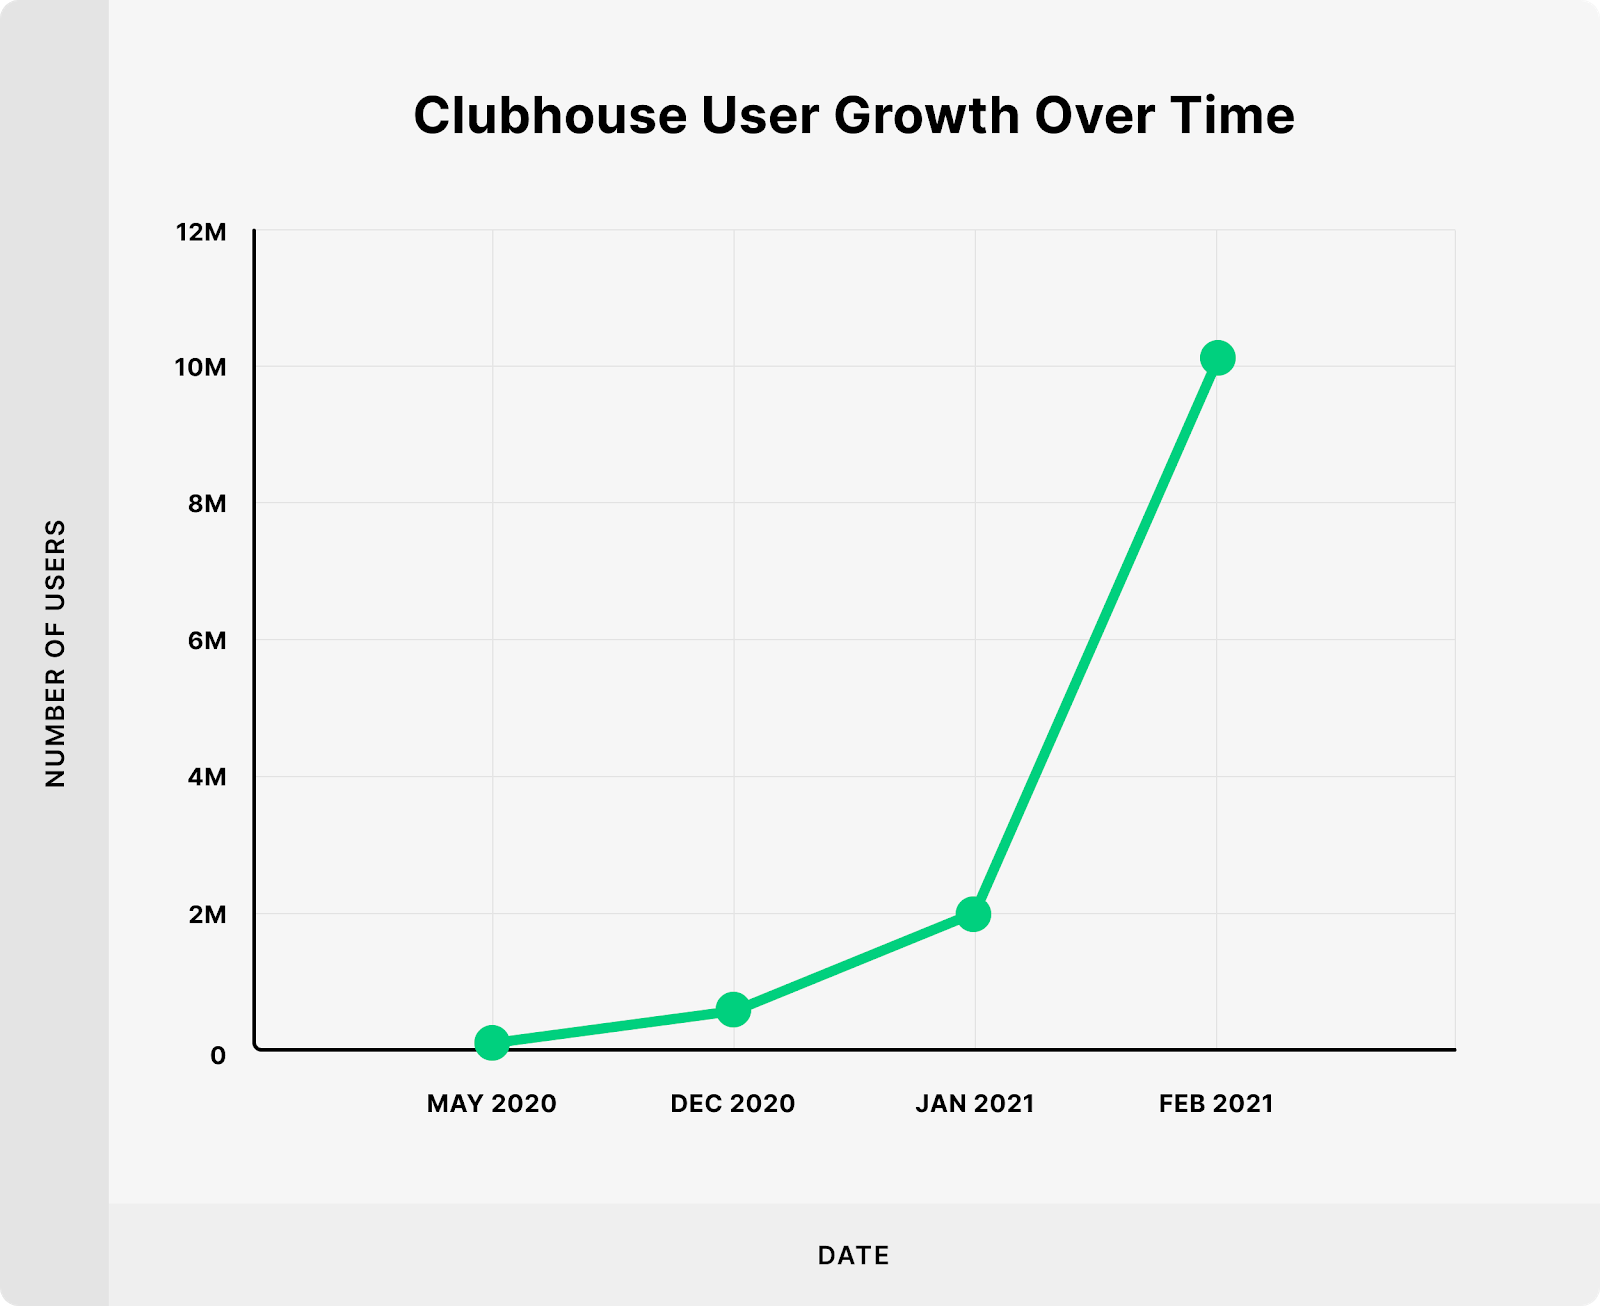 Clubhouse User Growth Over Time